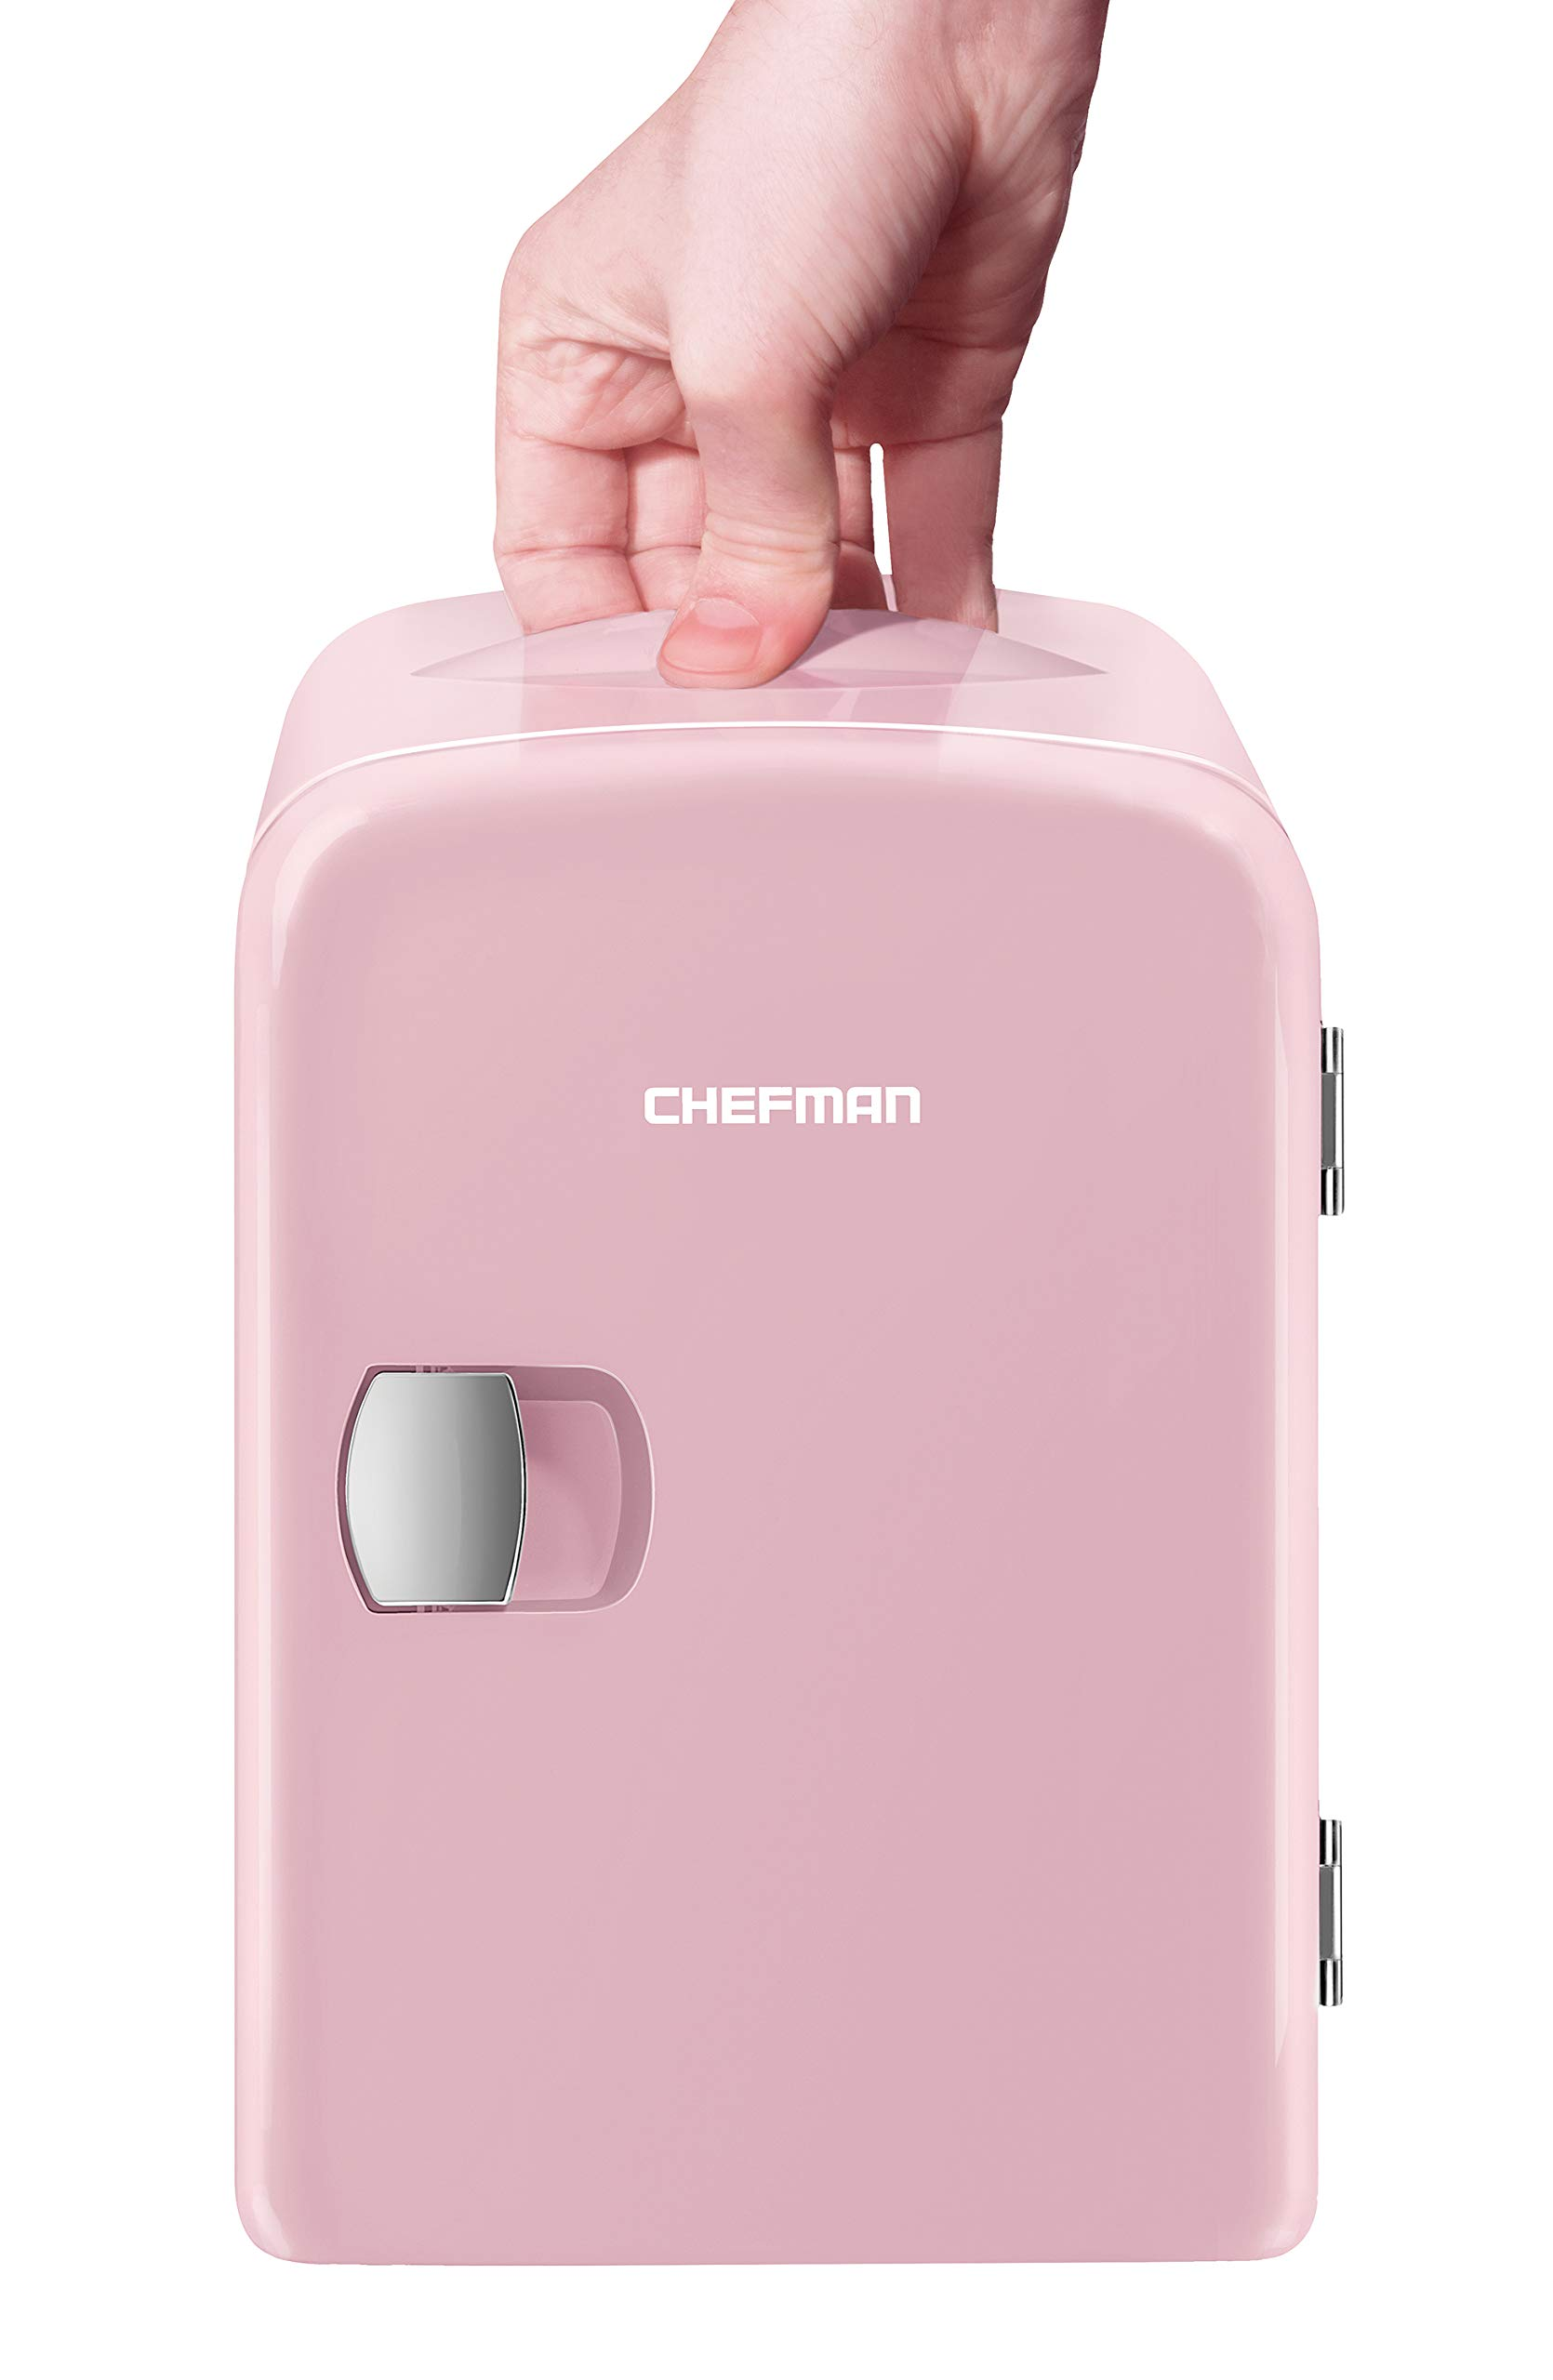 Chefman Mini Portable Compact Personal Fridge Cools & Heats, 4 Liter Capacity, Chills 6 12oz cans, 100% Freon-Free & Eco Friendly, Includes Plugs for Home Outlet & 12V Car Charger, Pink